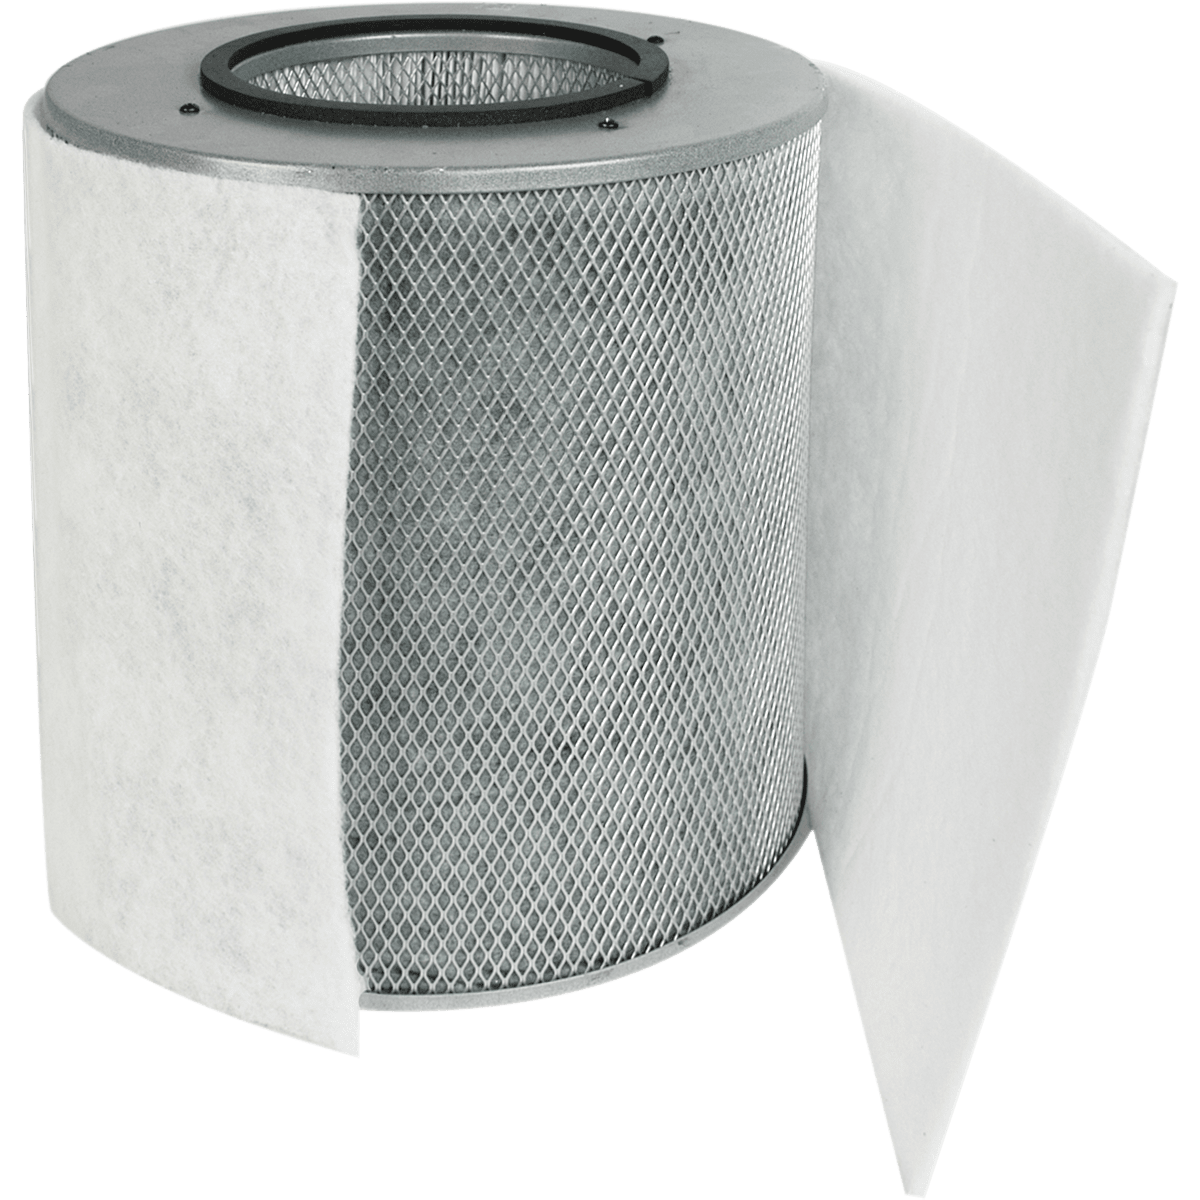 Austin Air Healthmate Replacement Filter with Prefilter